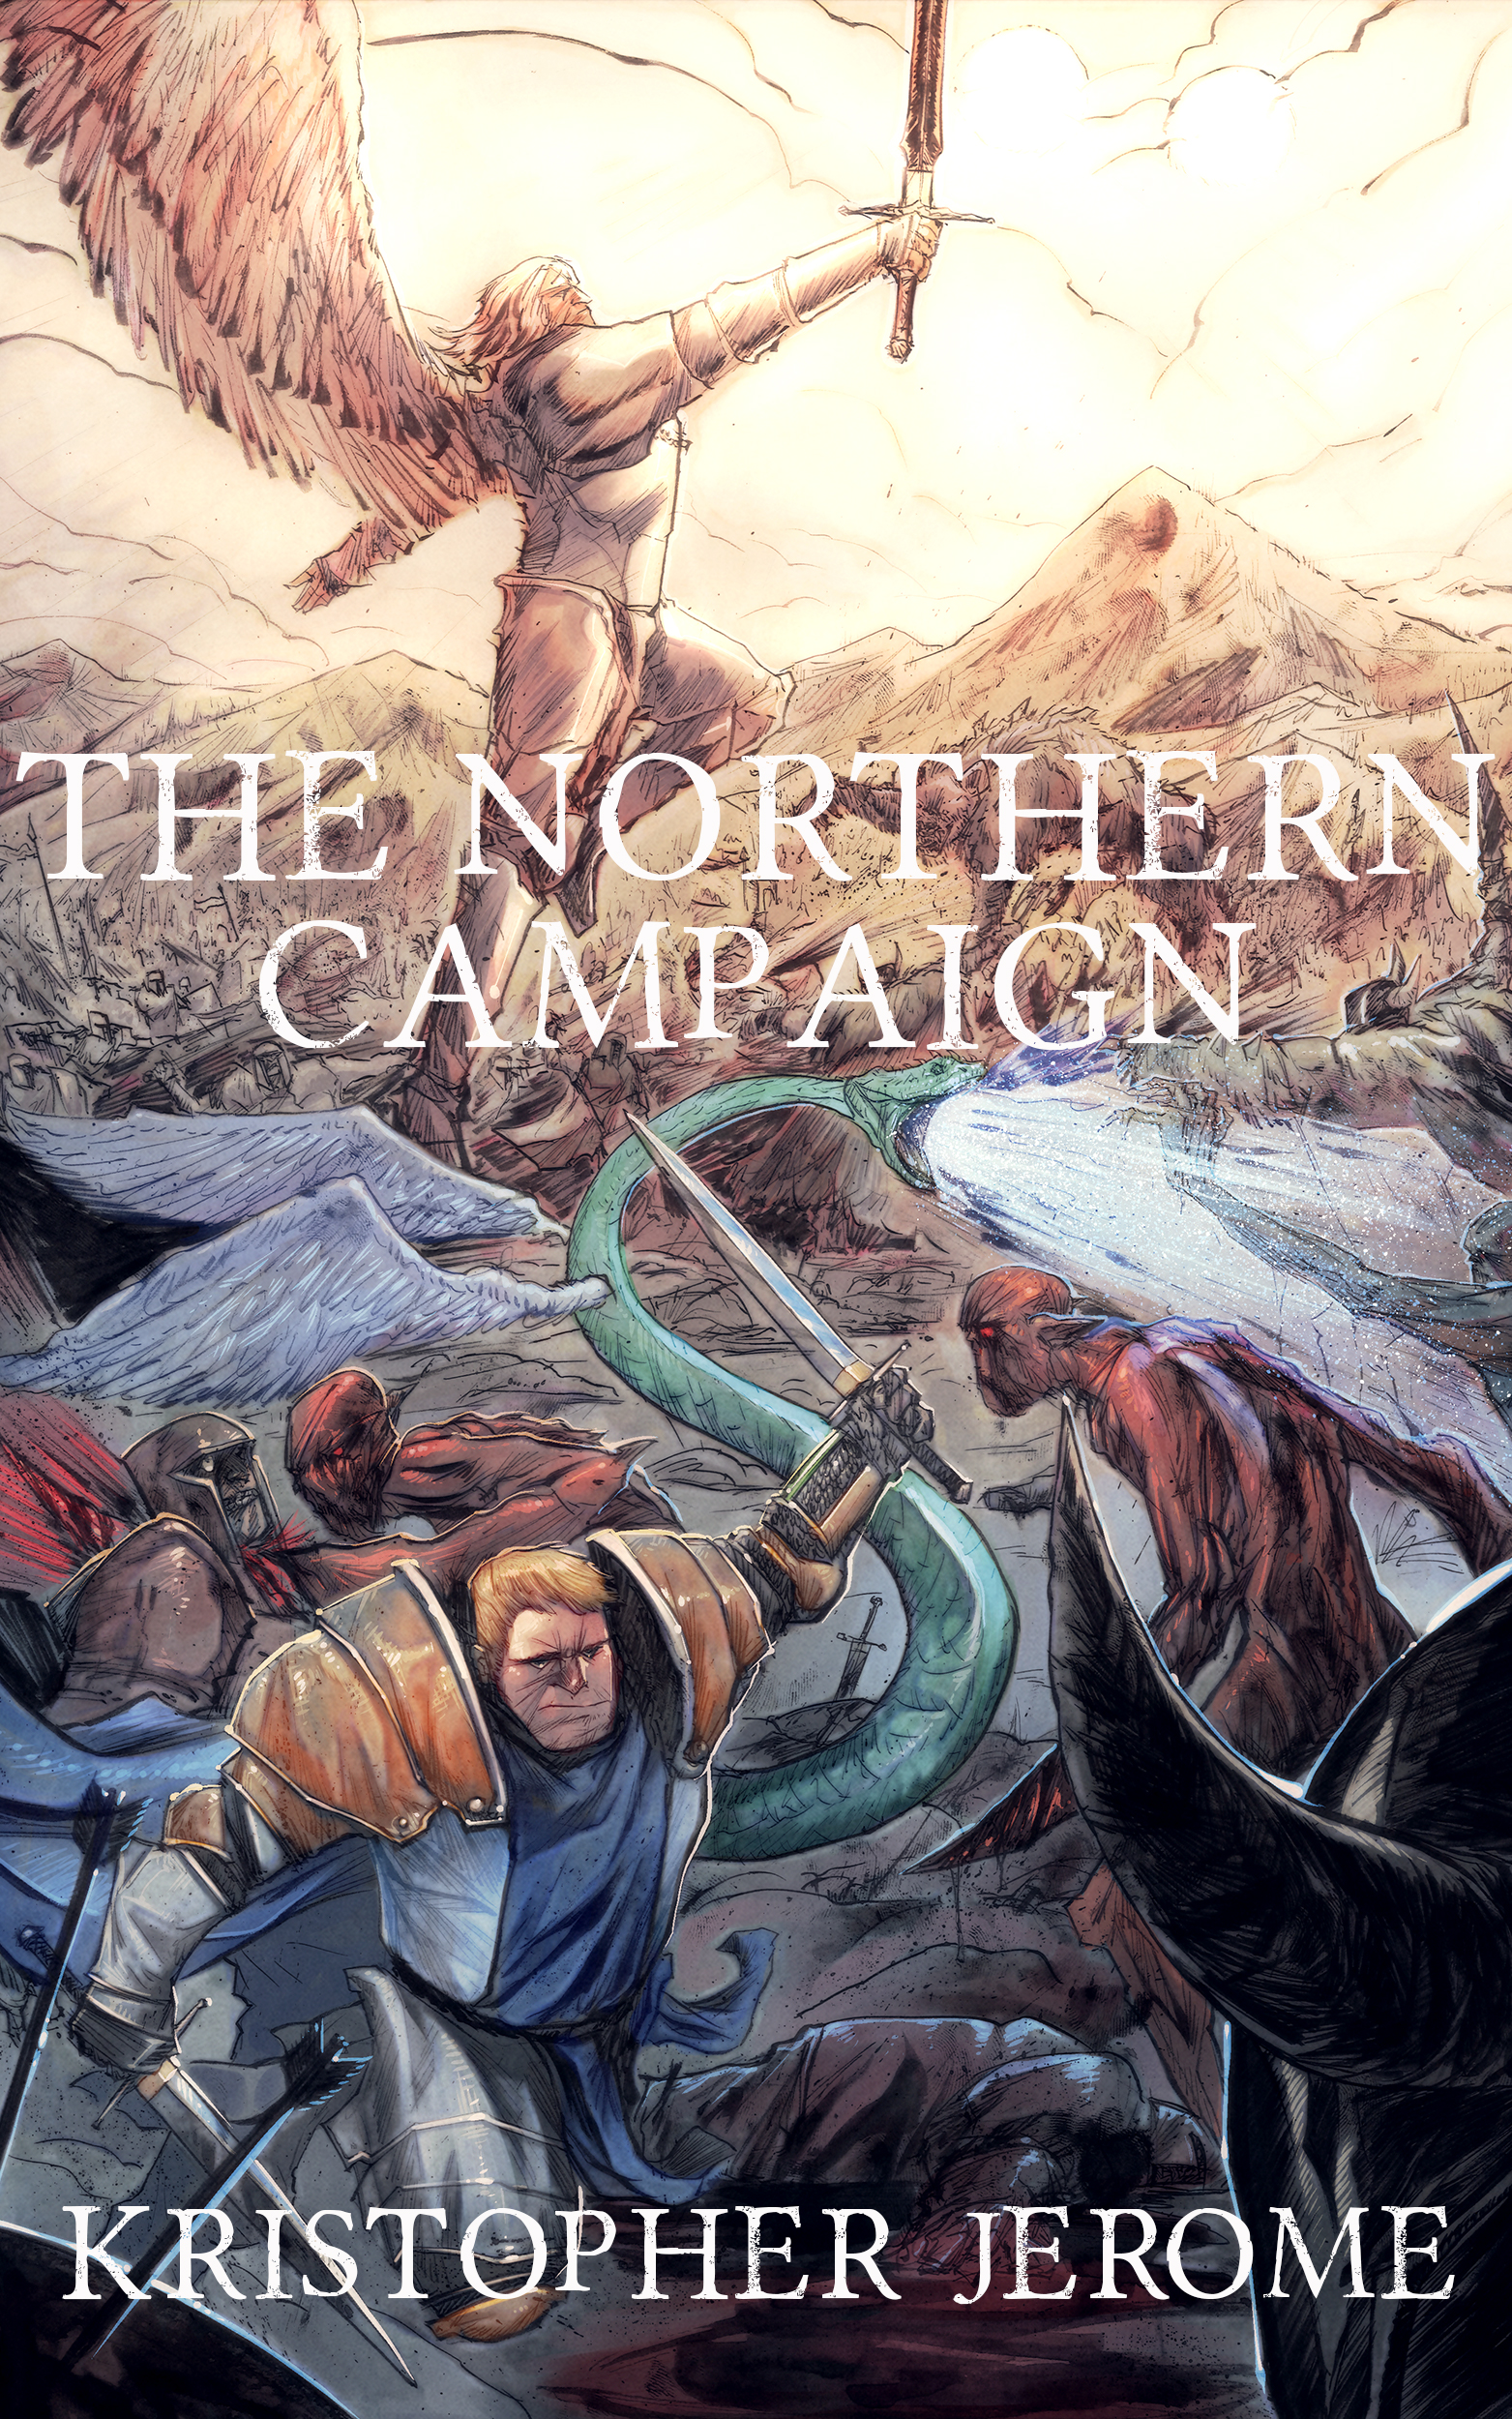 THE NORTHERN CAMPAIGN by Kristopher Jerome